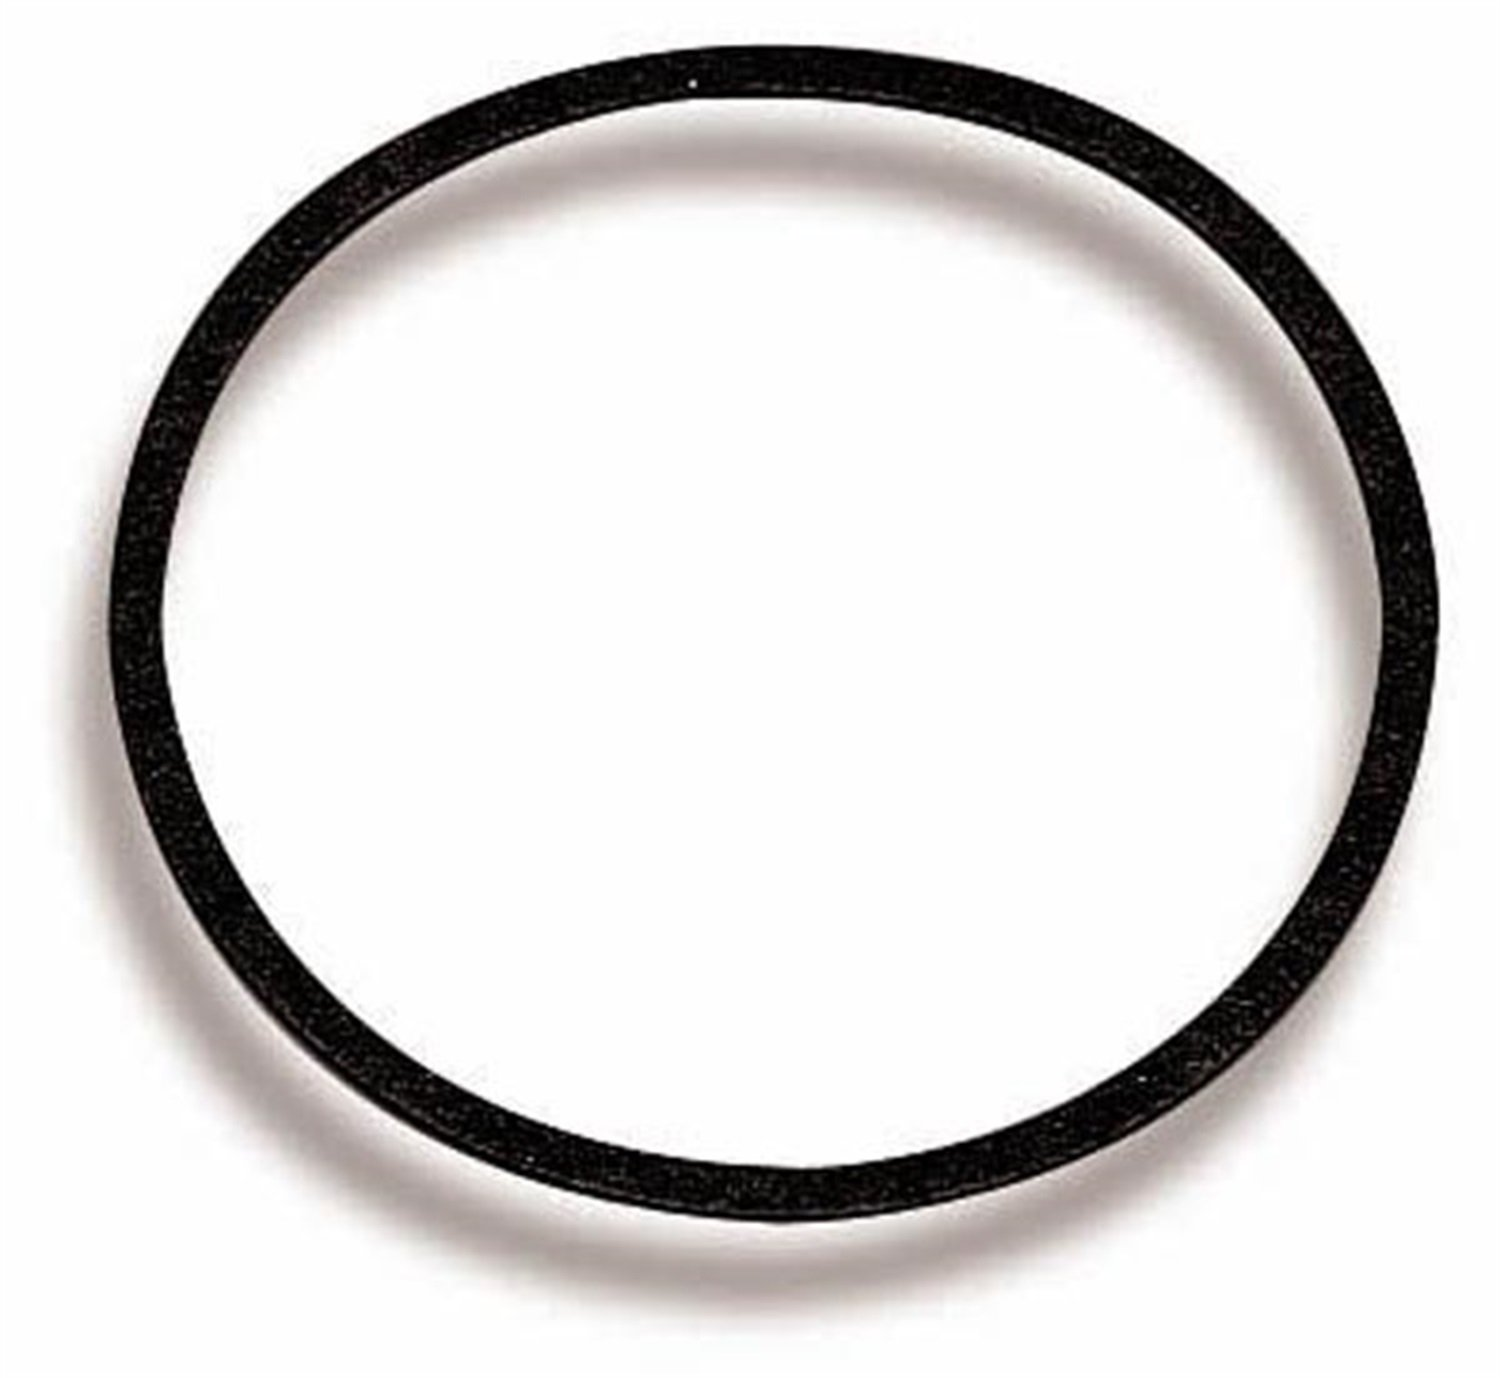 Weiand 108-4 5' Air Cleaner Gasket HOL 108-4